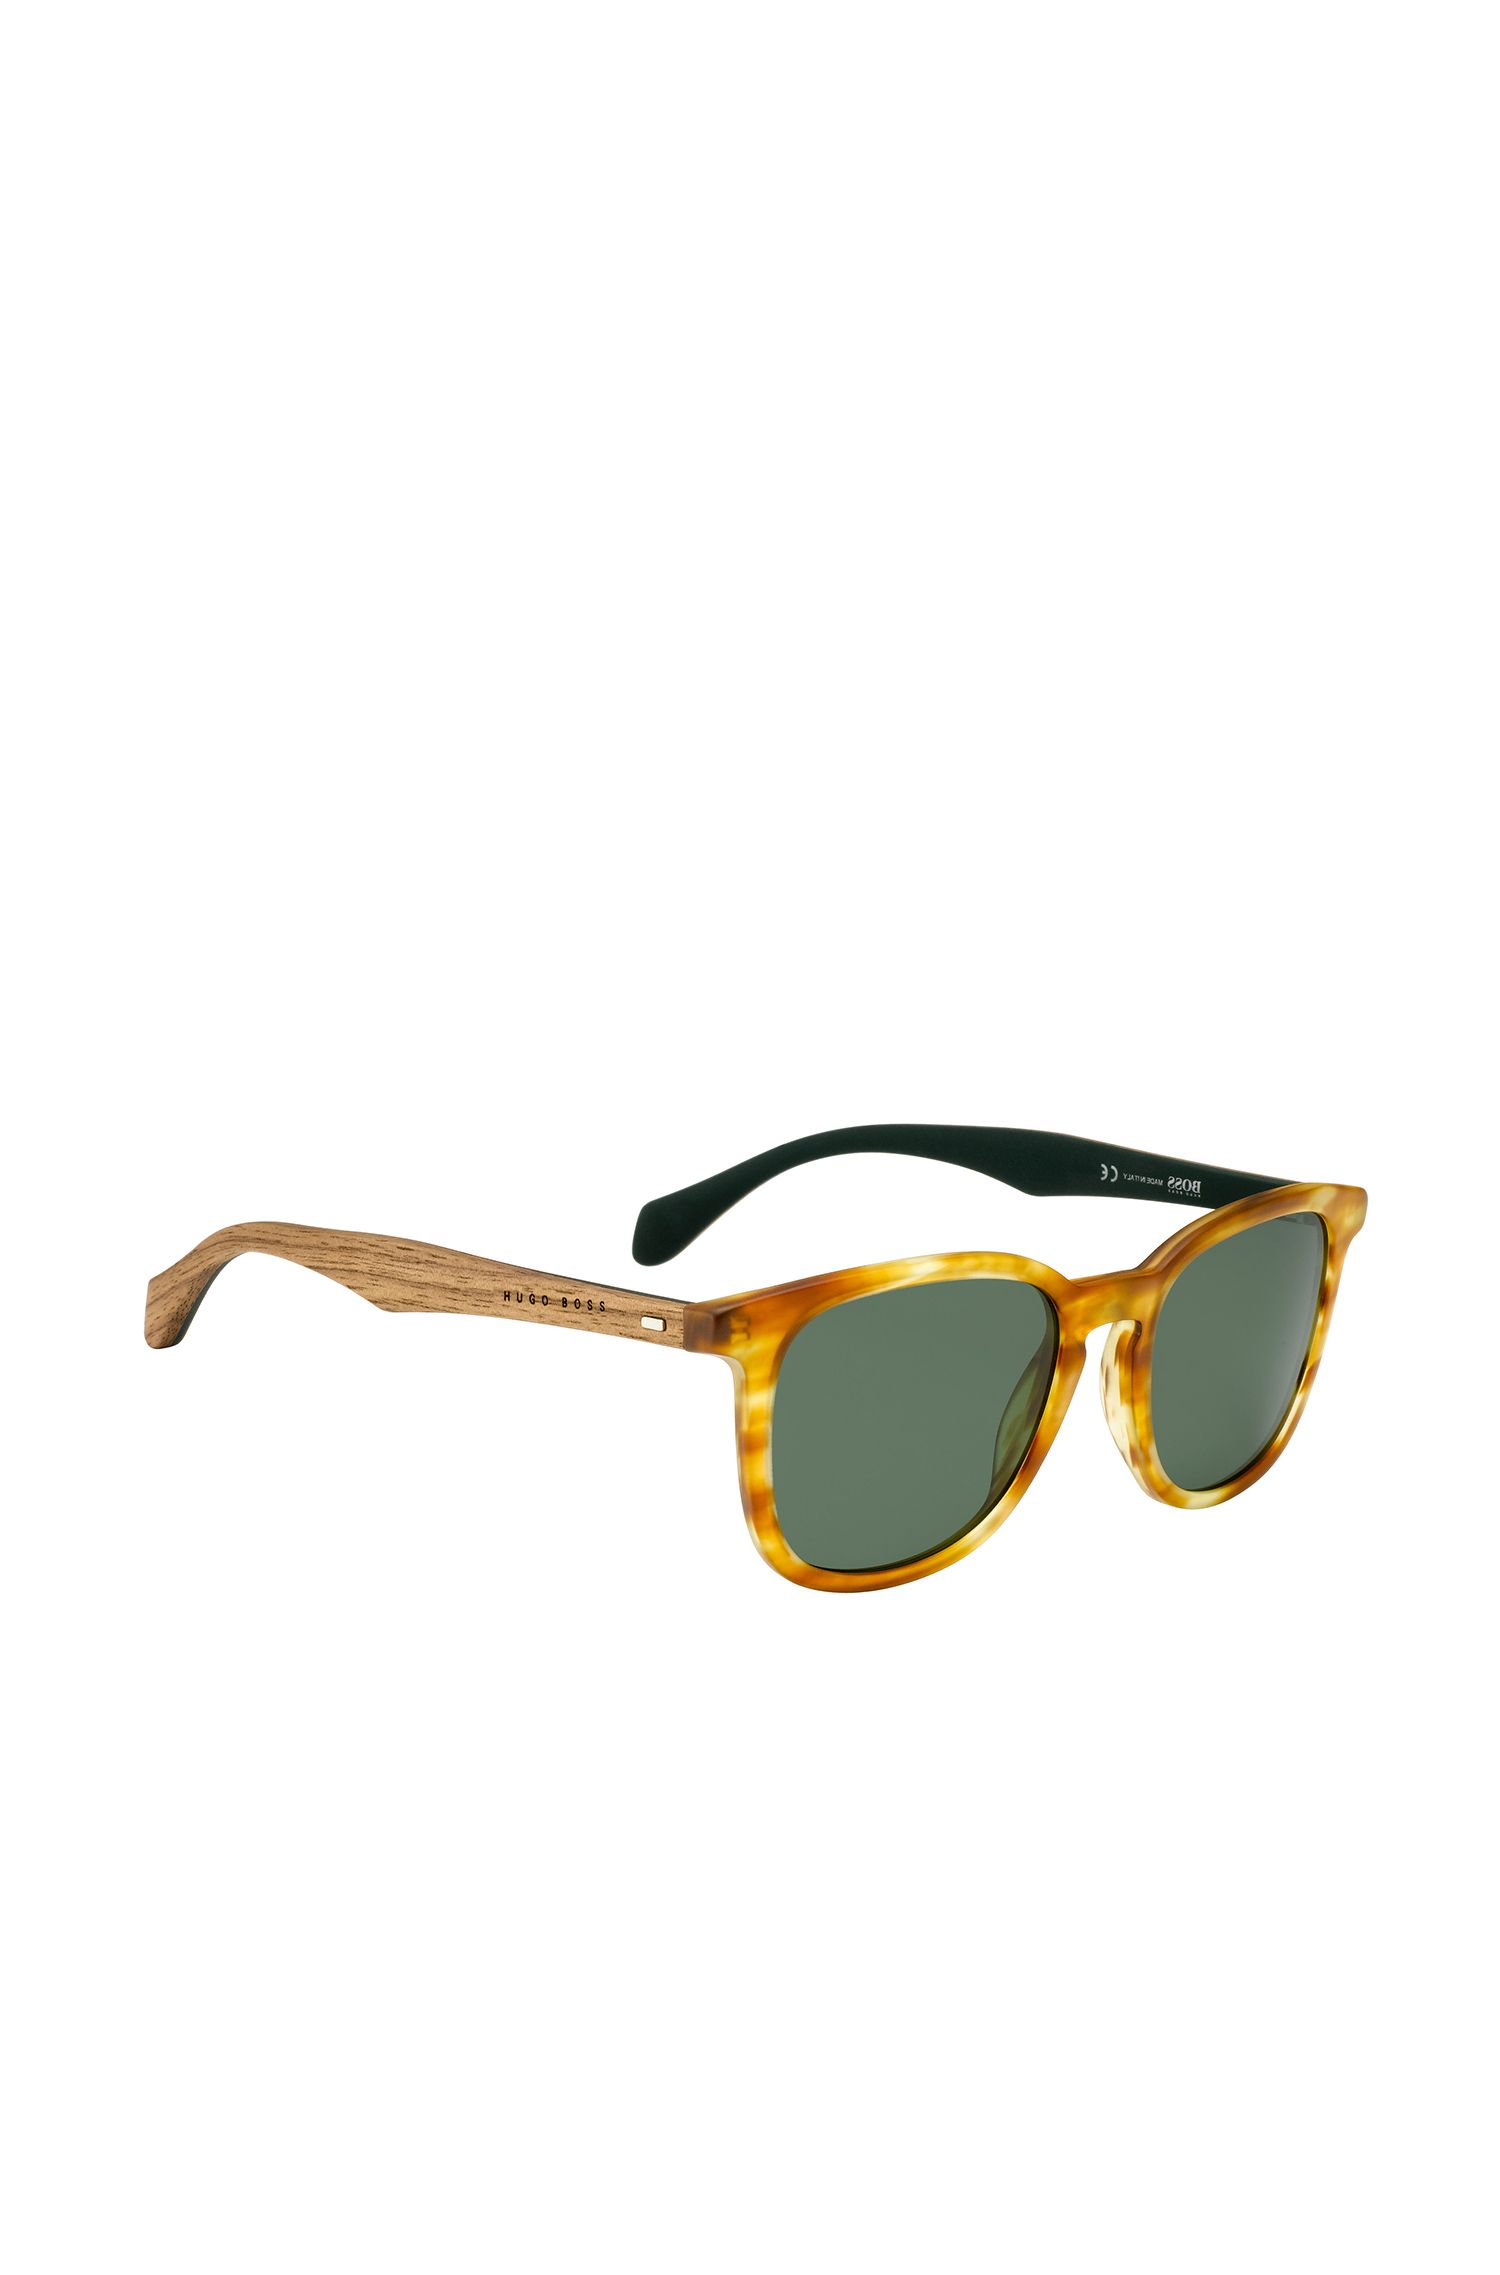 Wood Acetate Round Sunglasses | BOSS 0843S